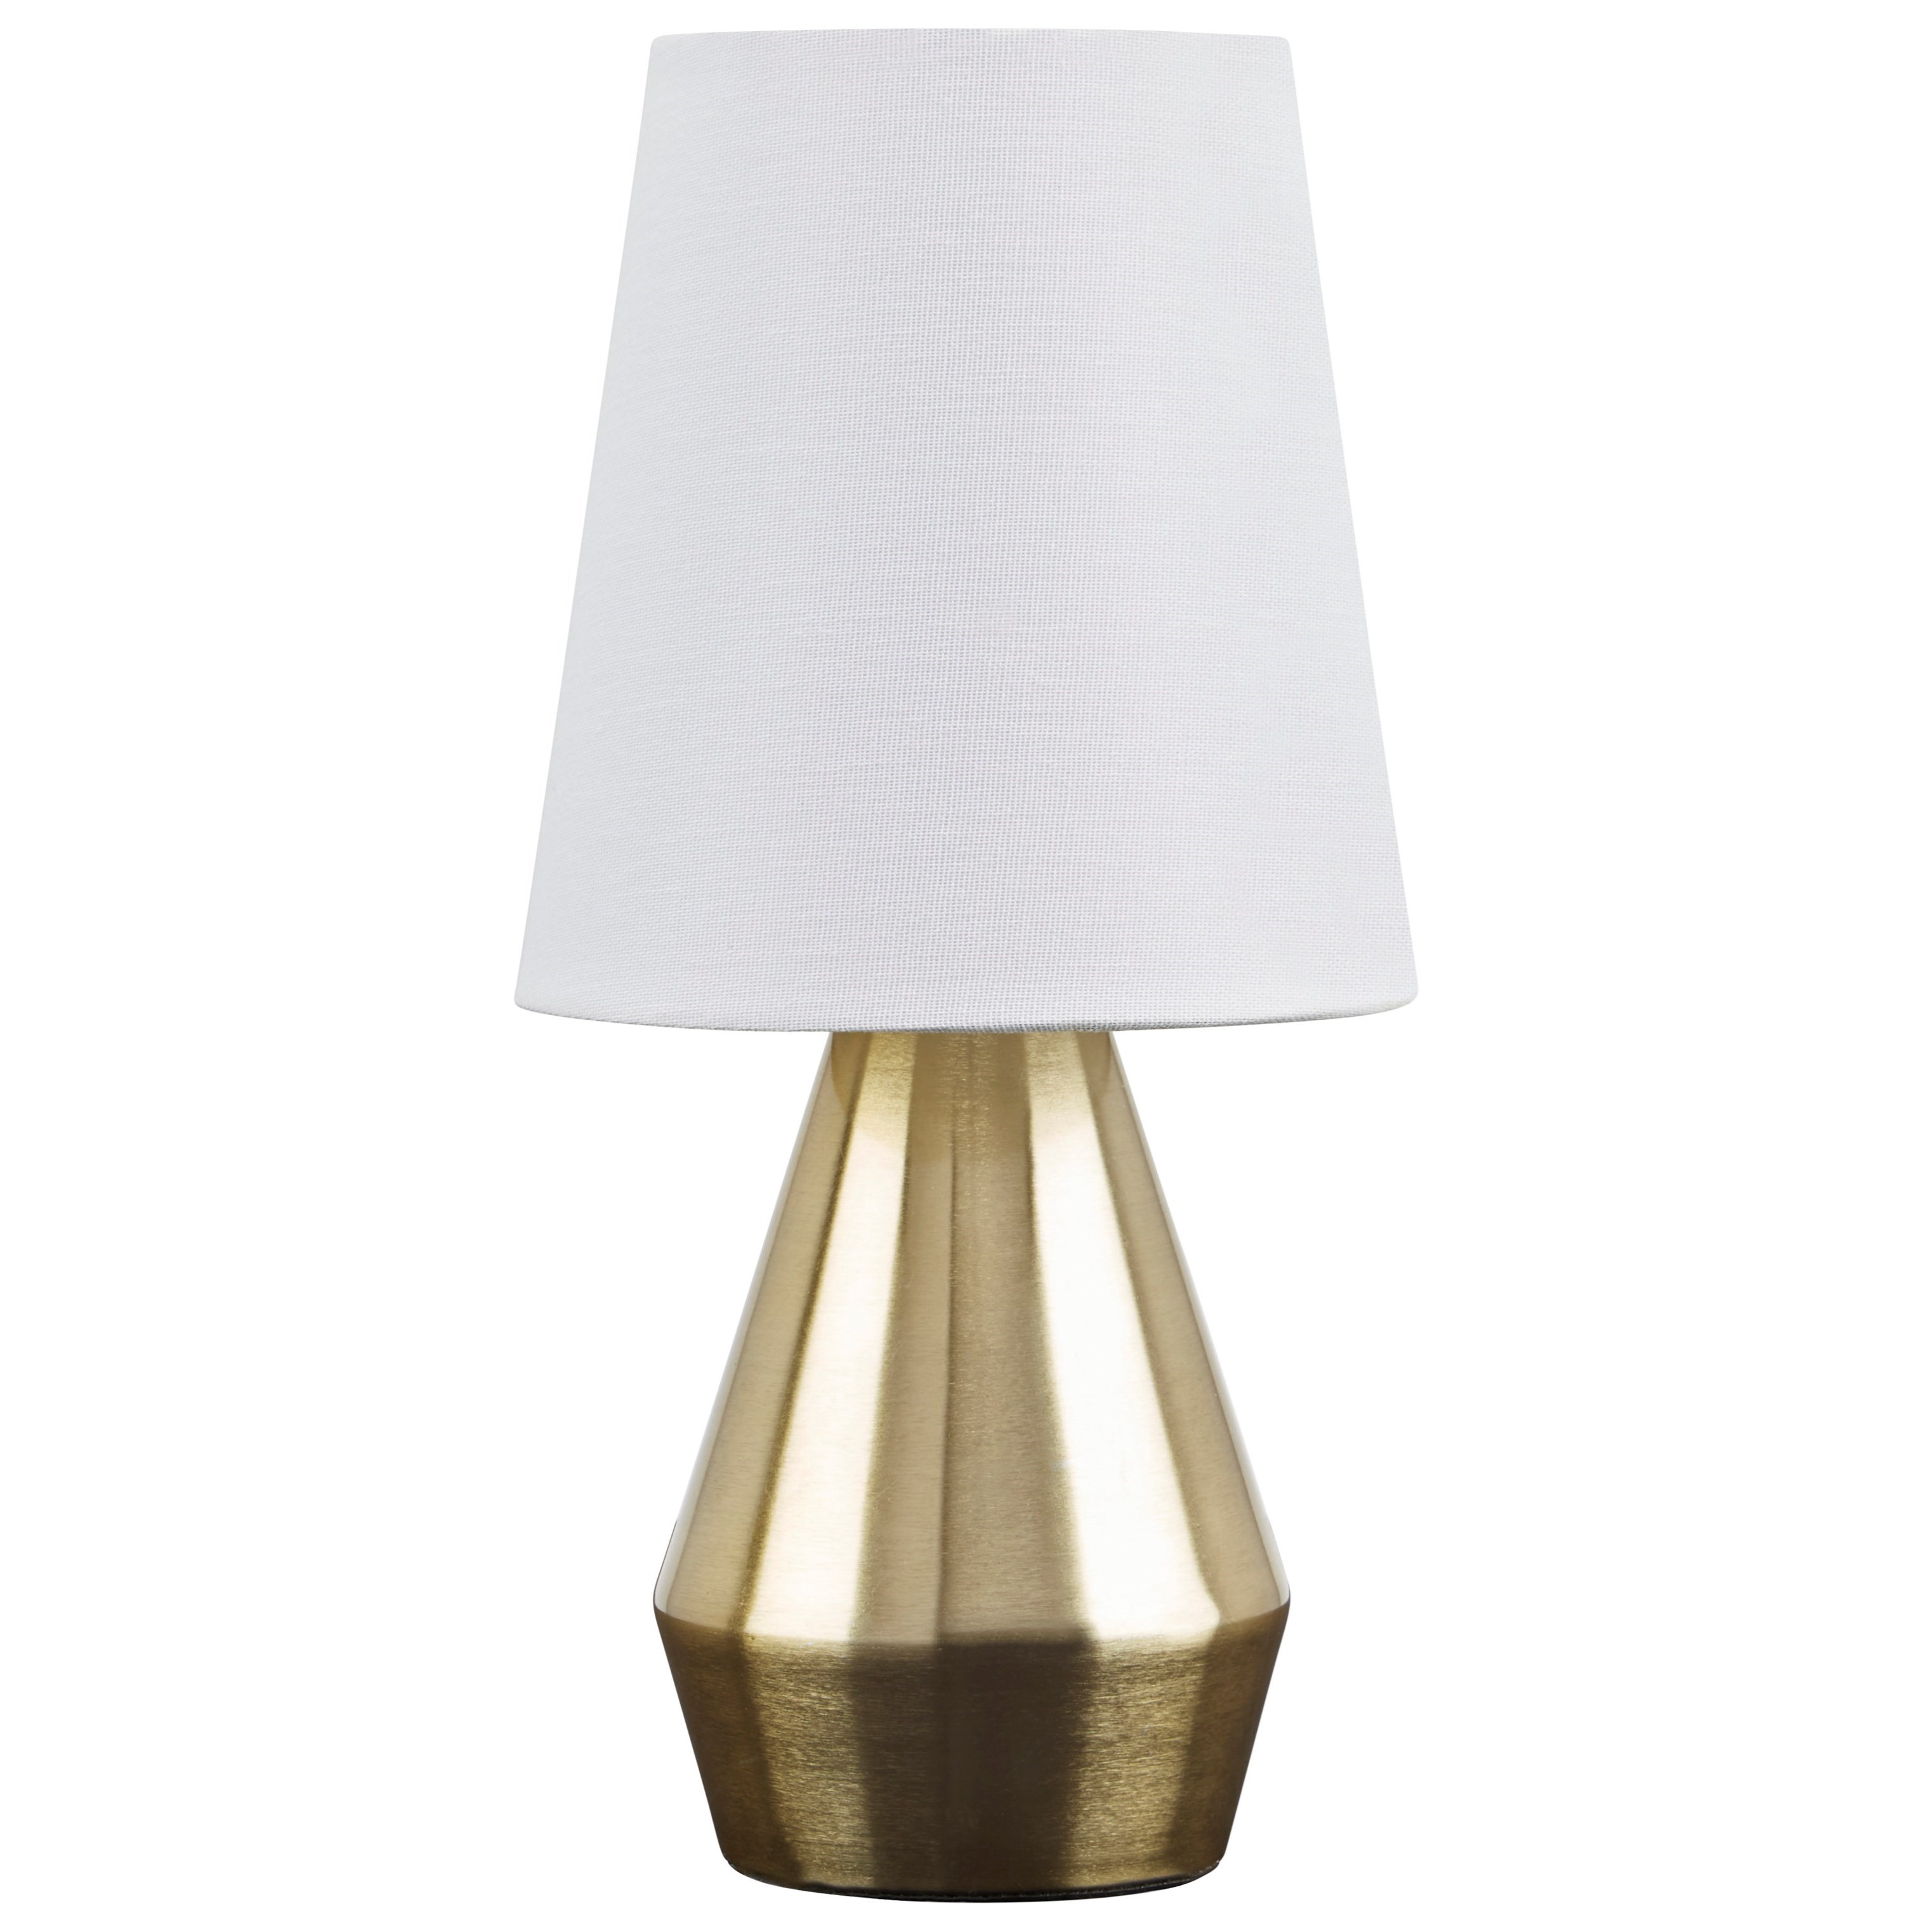 Lamps - Contemporary Lanry Brass Finish Metal Table Lamp by Ashley (Signature Design) at Johnny Janosik